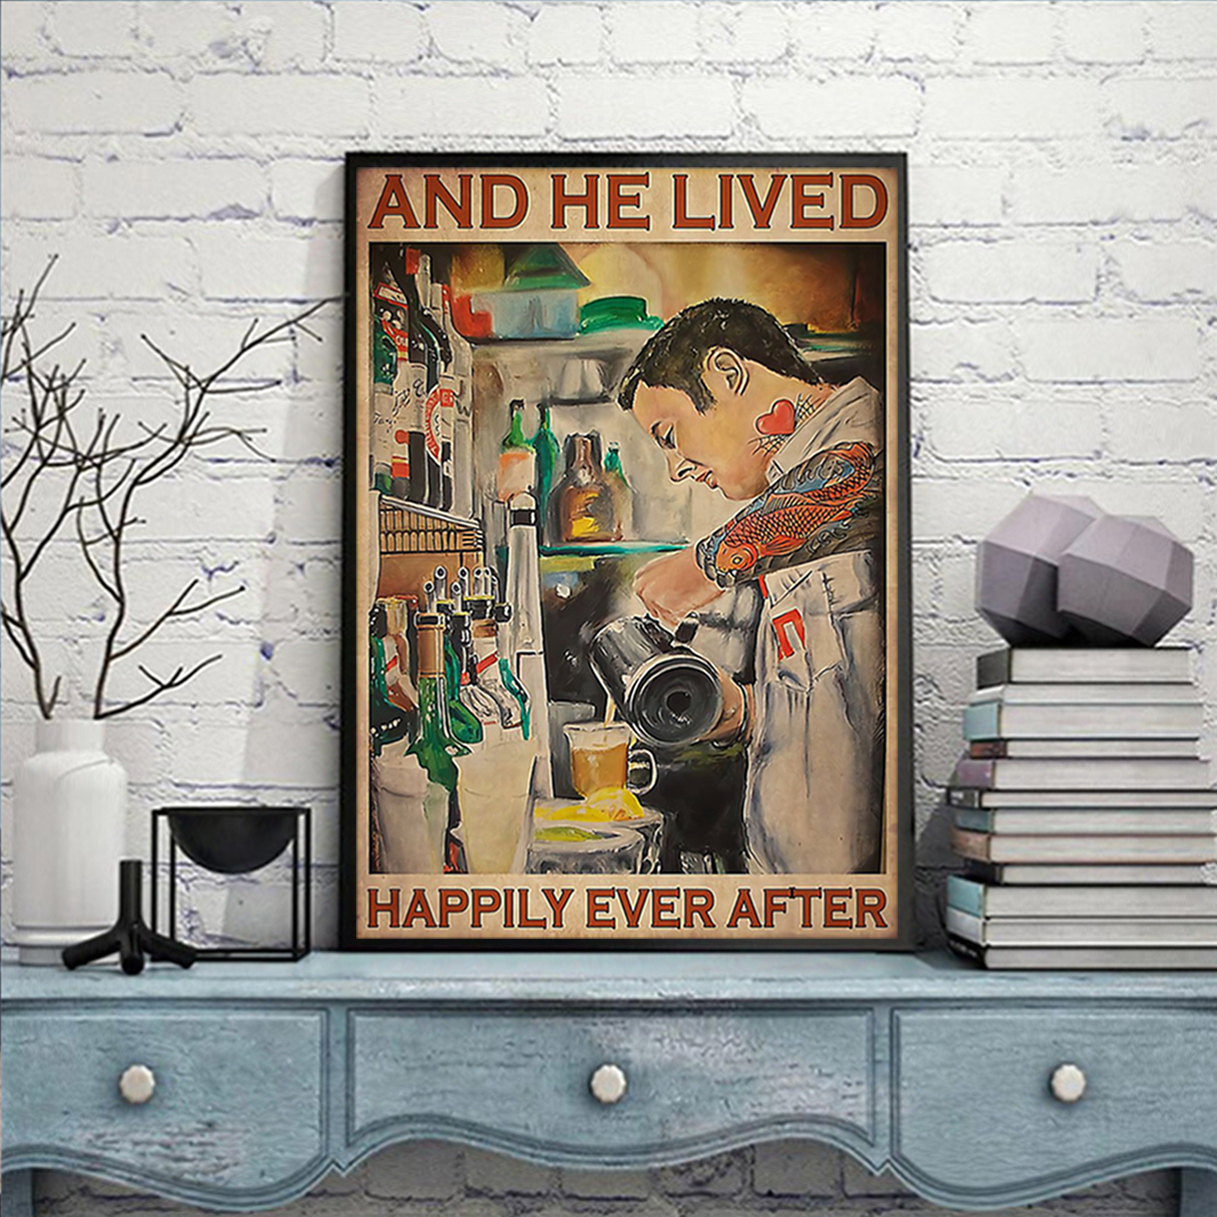 Bartender and he lived happily ever after poster A2